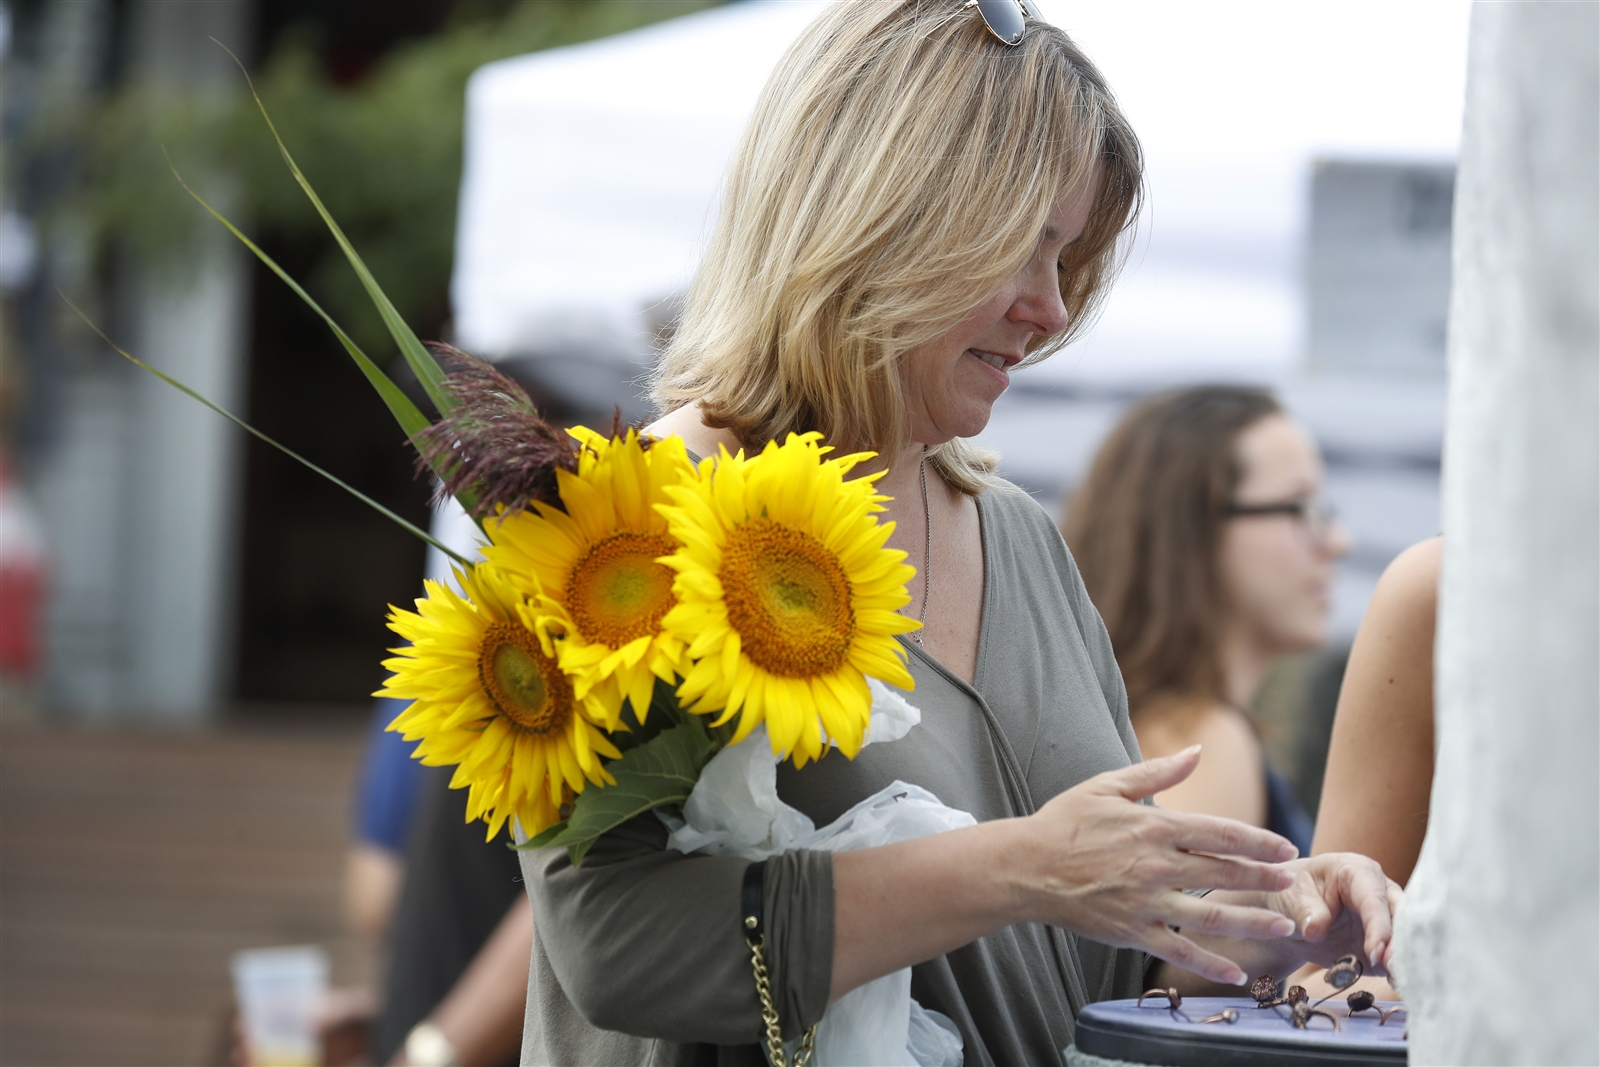 Michele Dill tries on some jewelry during the Elmwood Avenue Festival of the Arts in Buffalo Saturday, August 26, 2017.